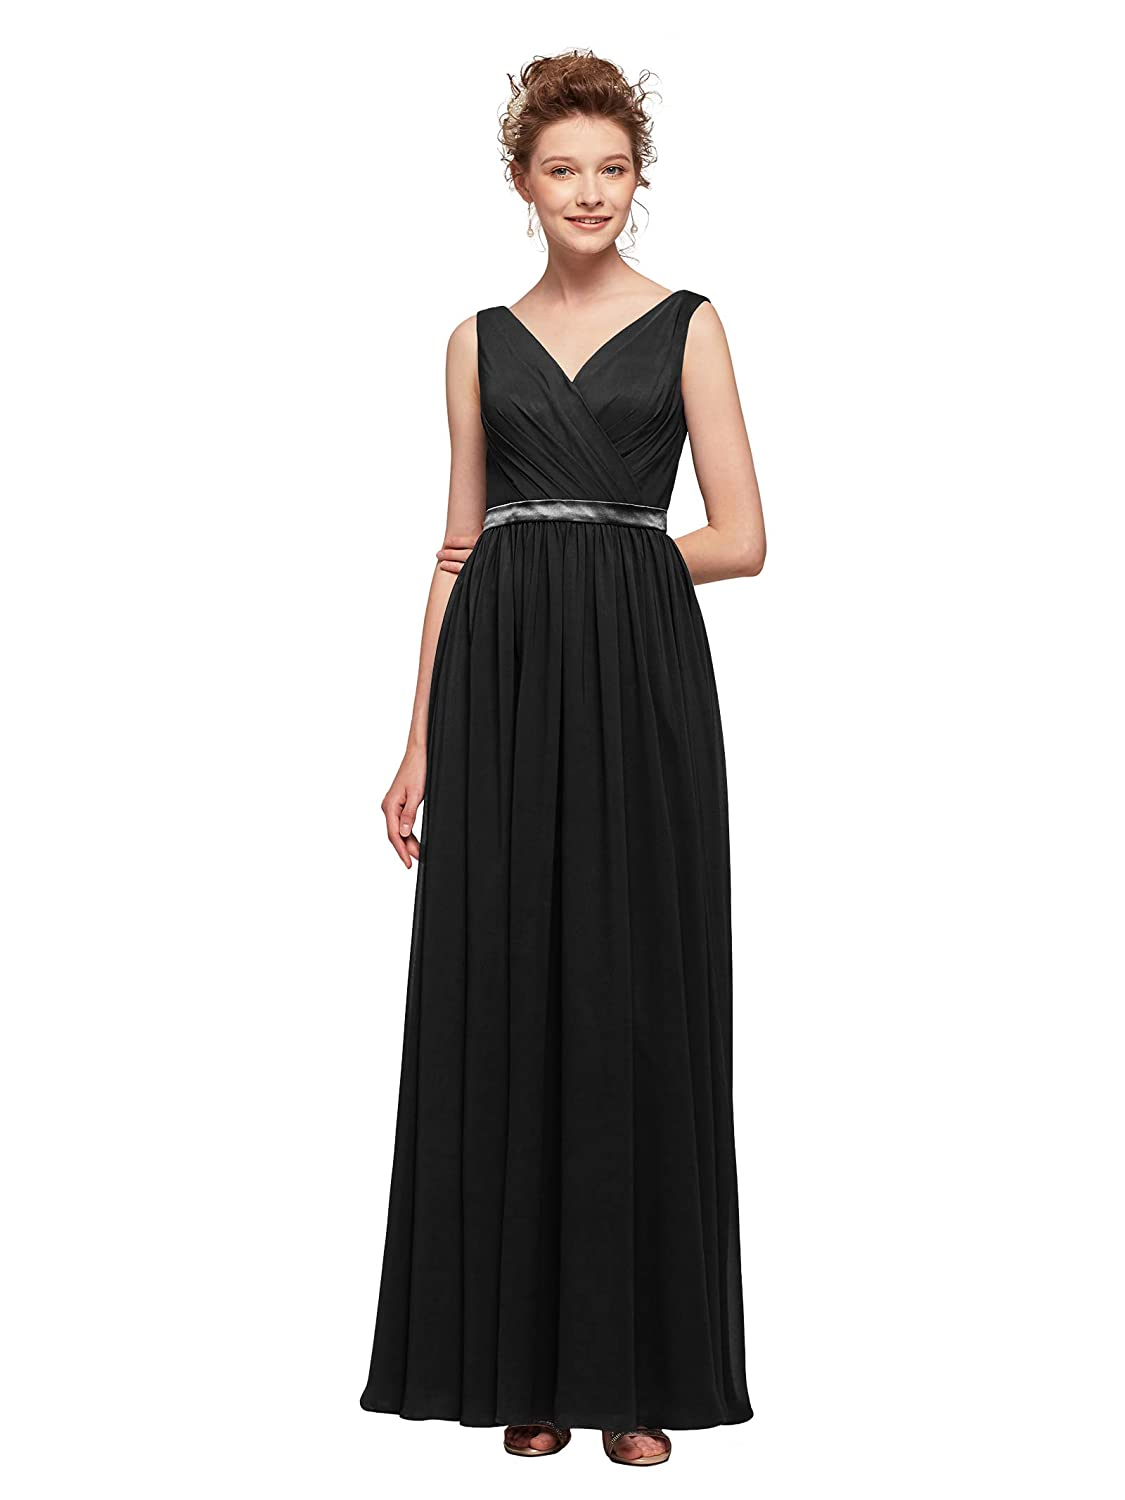 3ab073f7a41 AW V-Neck Bridesmaid Dresses Chiffon Formal Prom Dresses Long Plus Size  Evening Gowns at Amazon Women s Clothing store